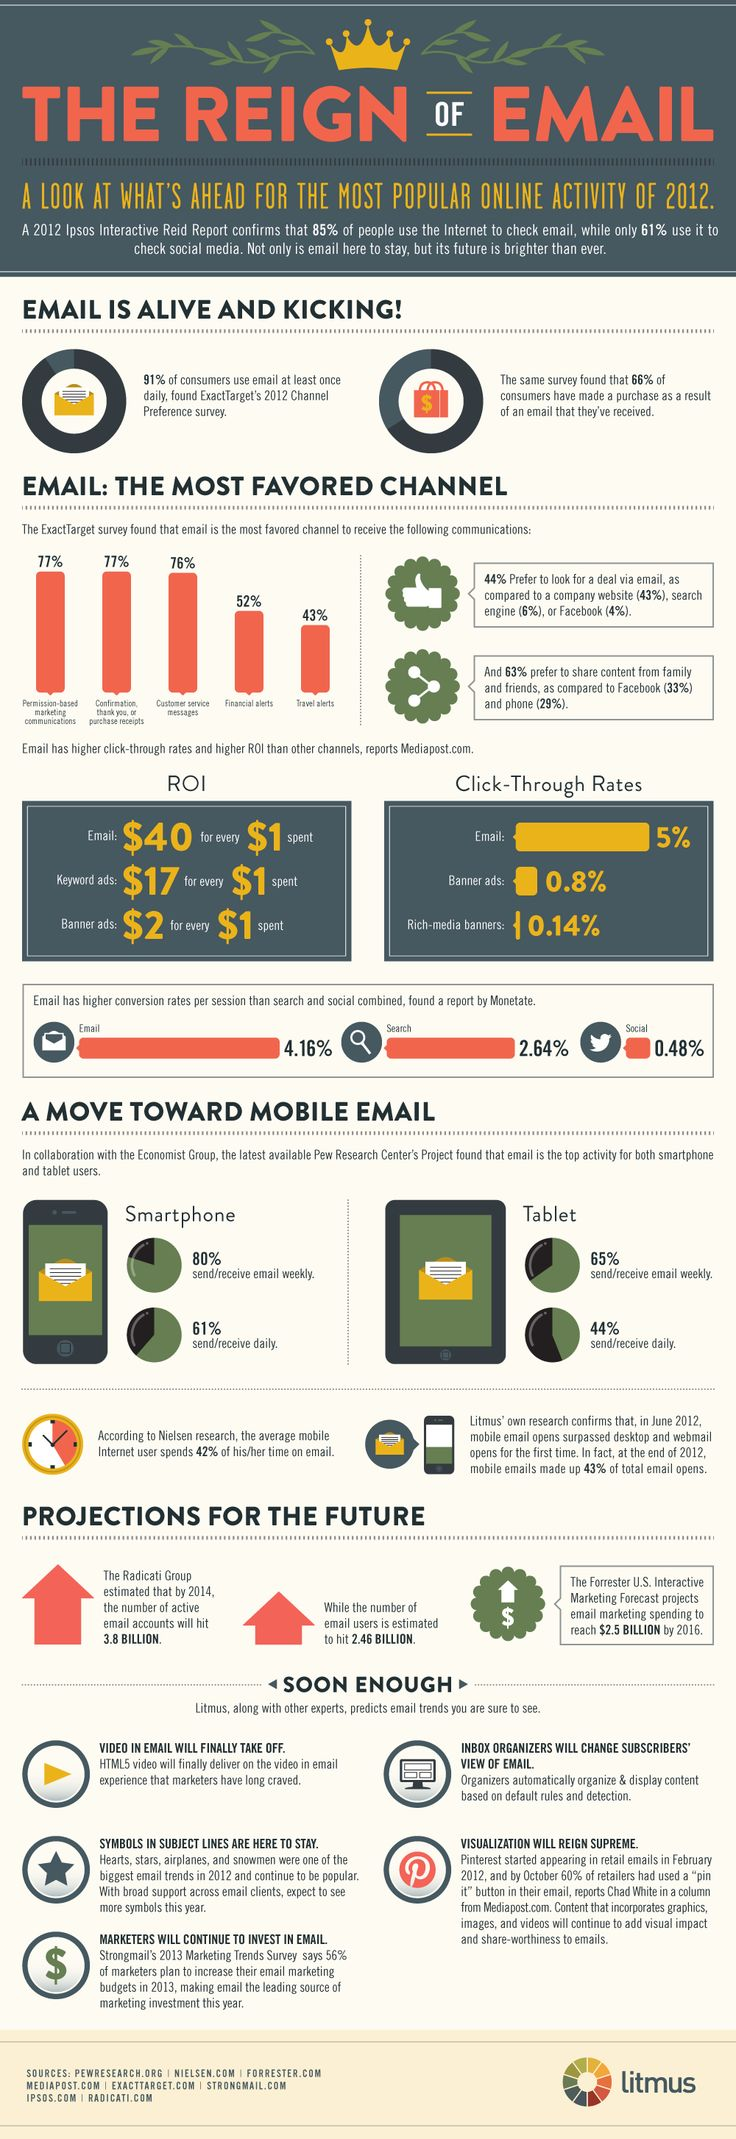 Why Email Still Reigns Online Interaction [Infographic]